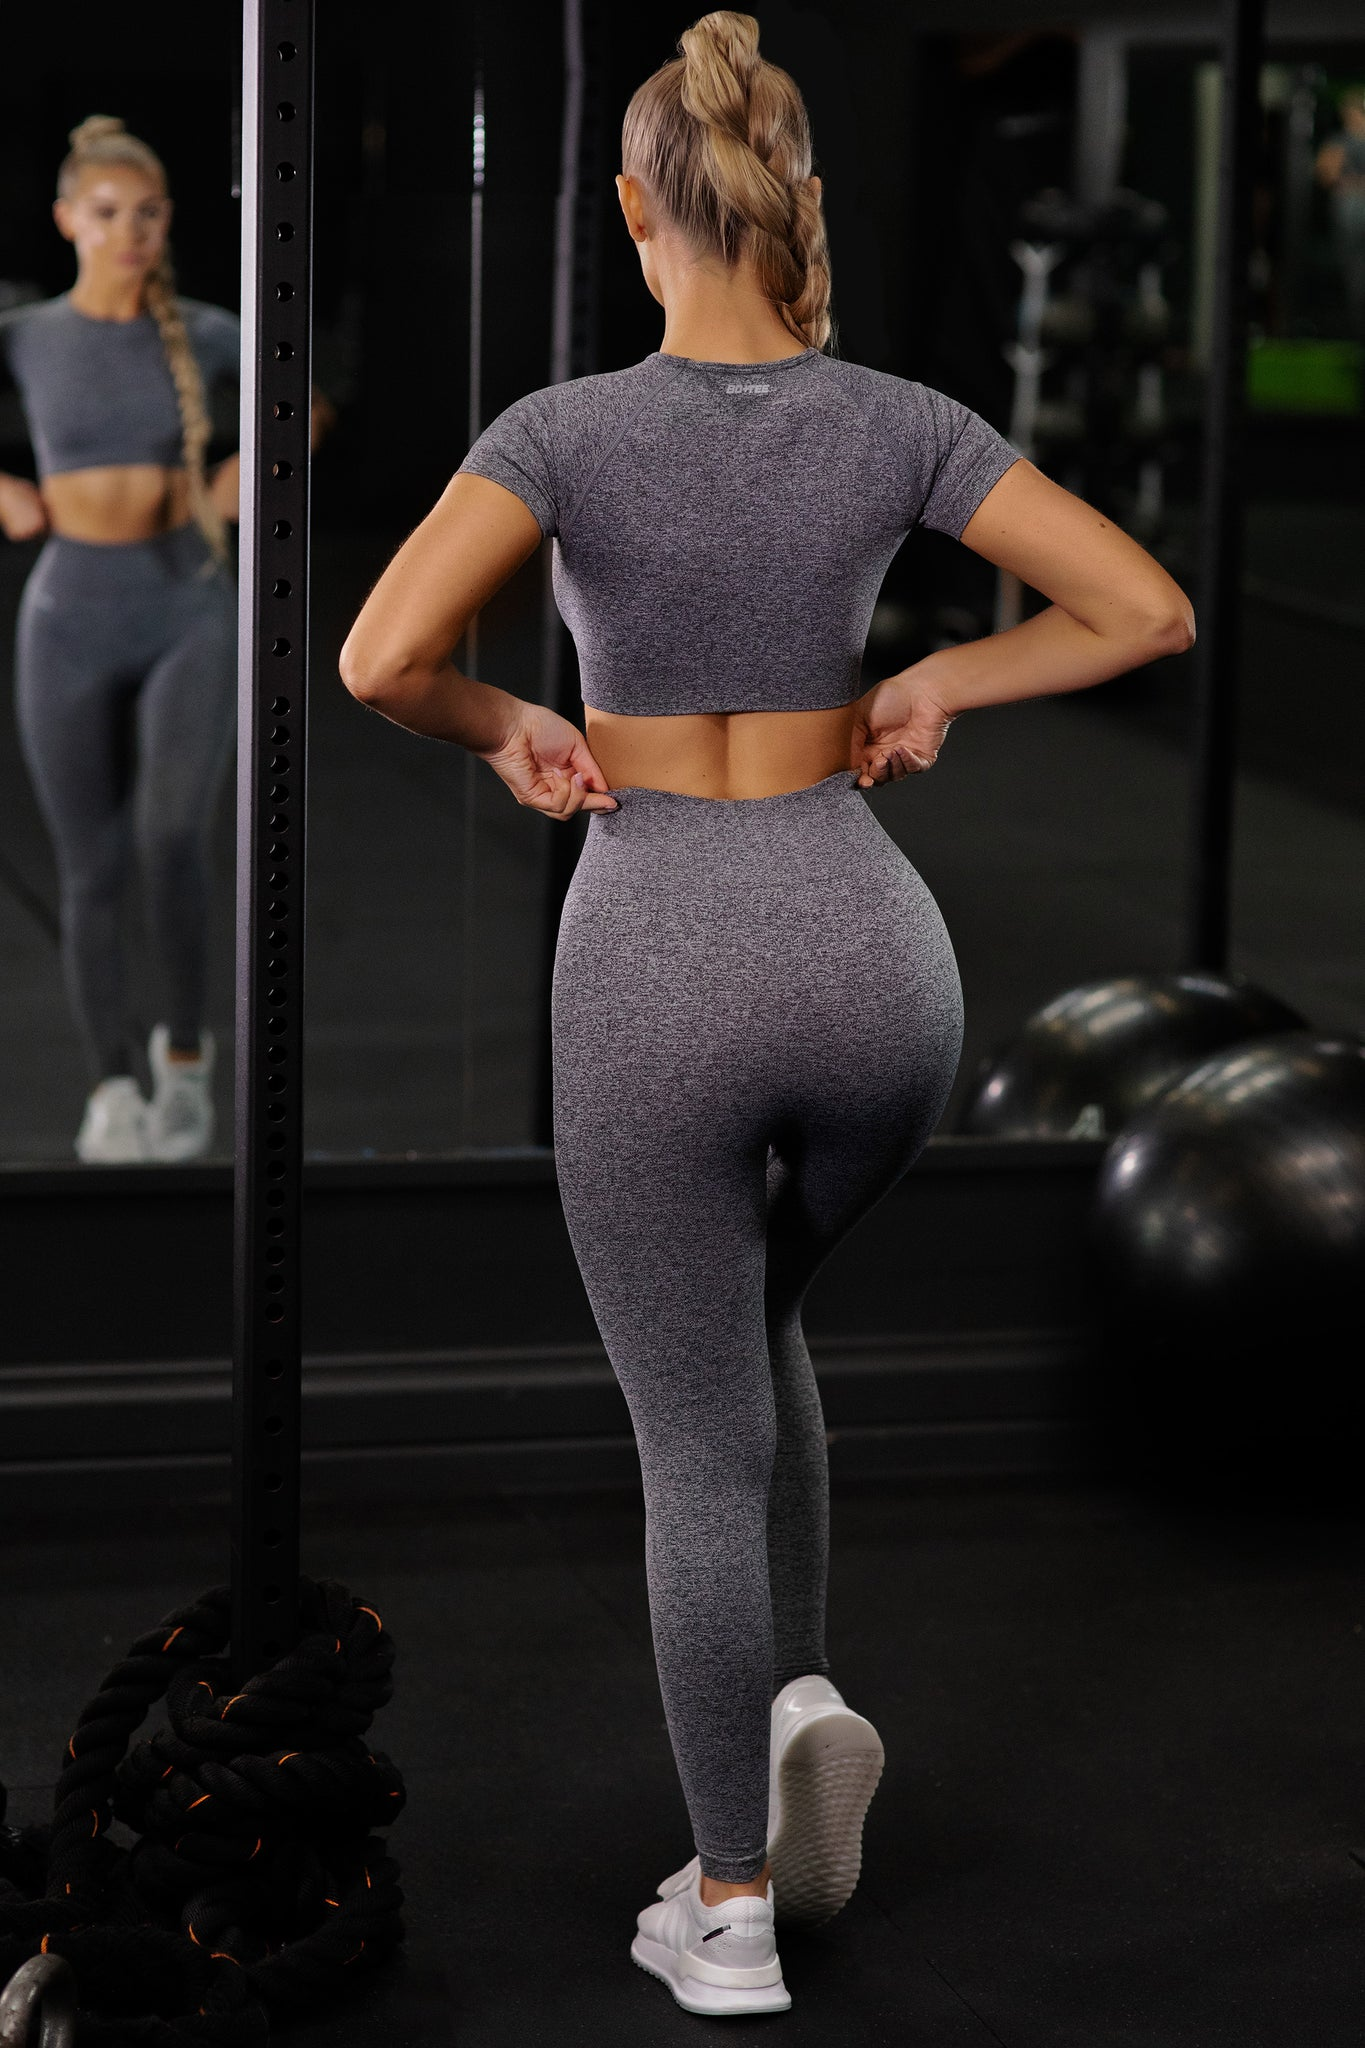 Plain black marl seamless high waisted full length gym leggings. Image 3 of 6.